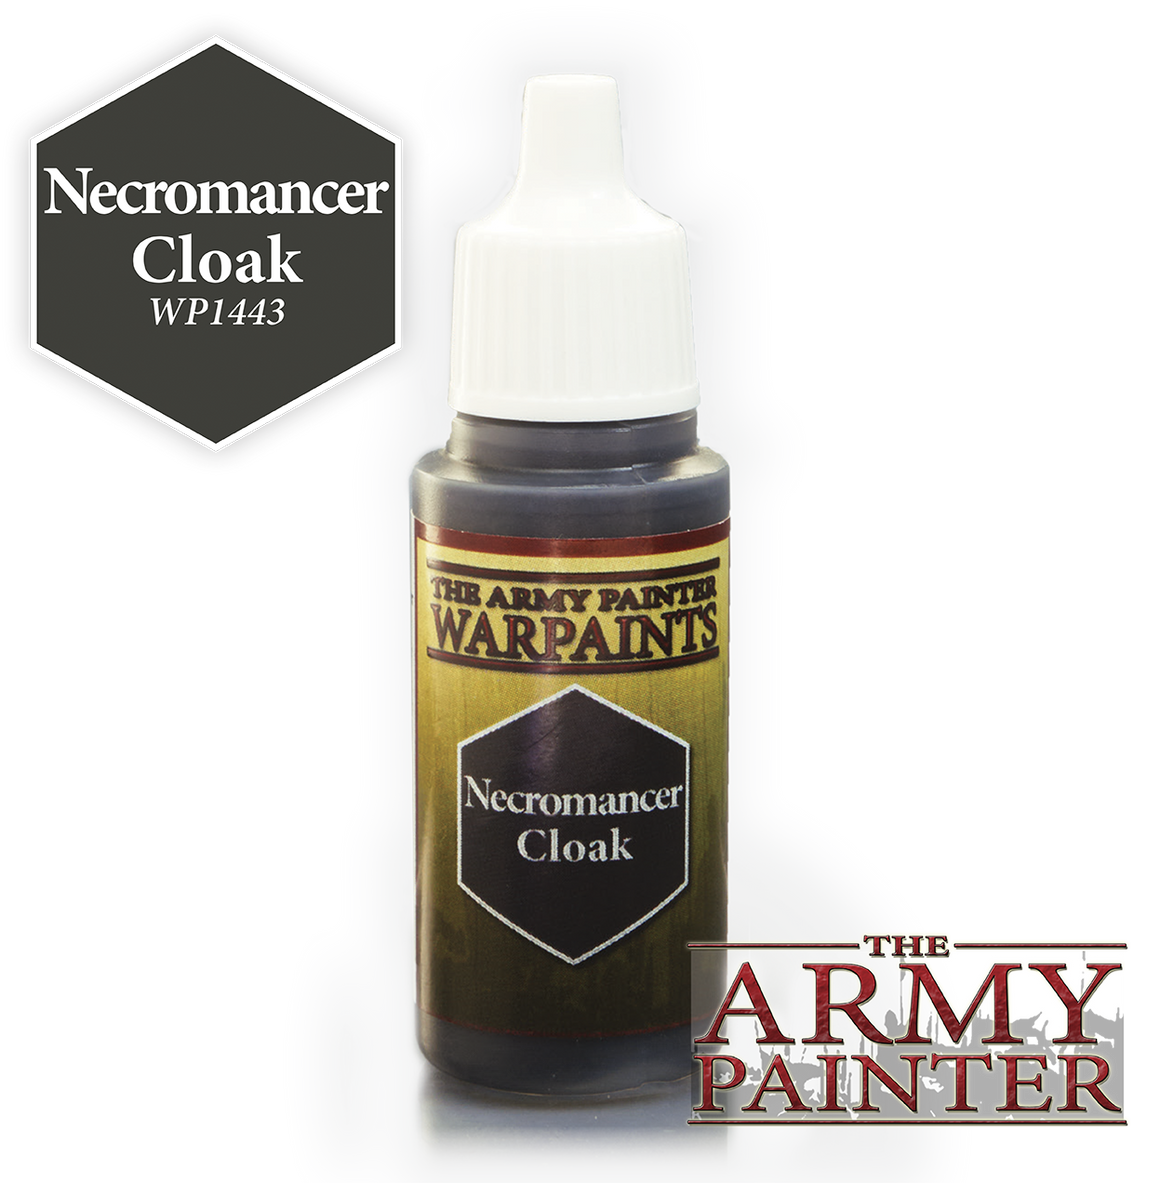 Army Painter Acrylic Warpaint - Necromancer Cloak